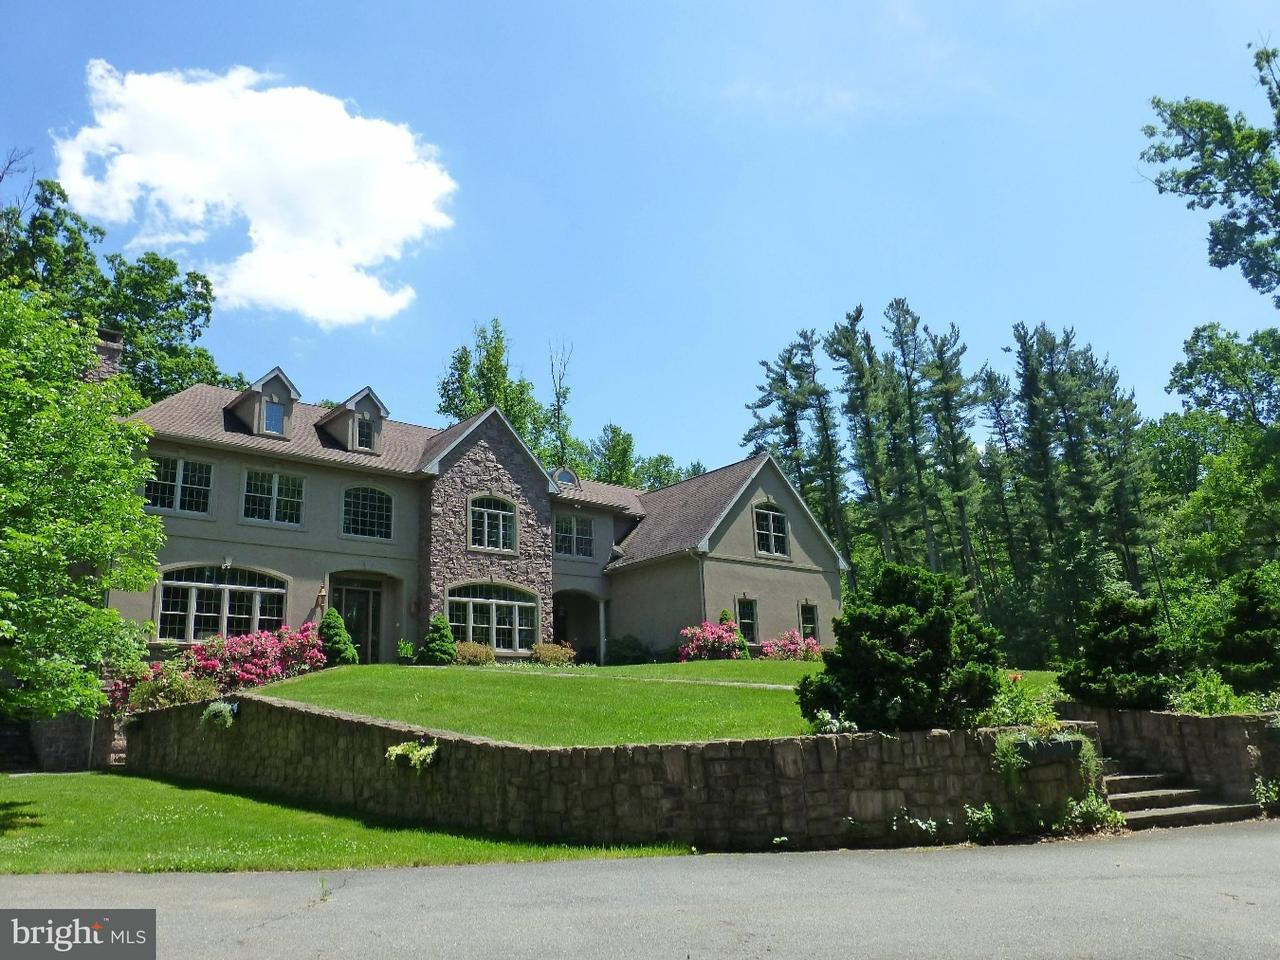 Single Family Home for Sale at 100 LOOKING GLASS Lane Mohnton, Pennsylvania 19607 United States